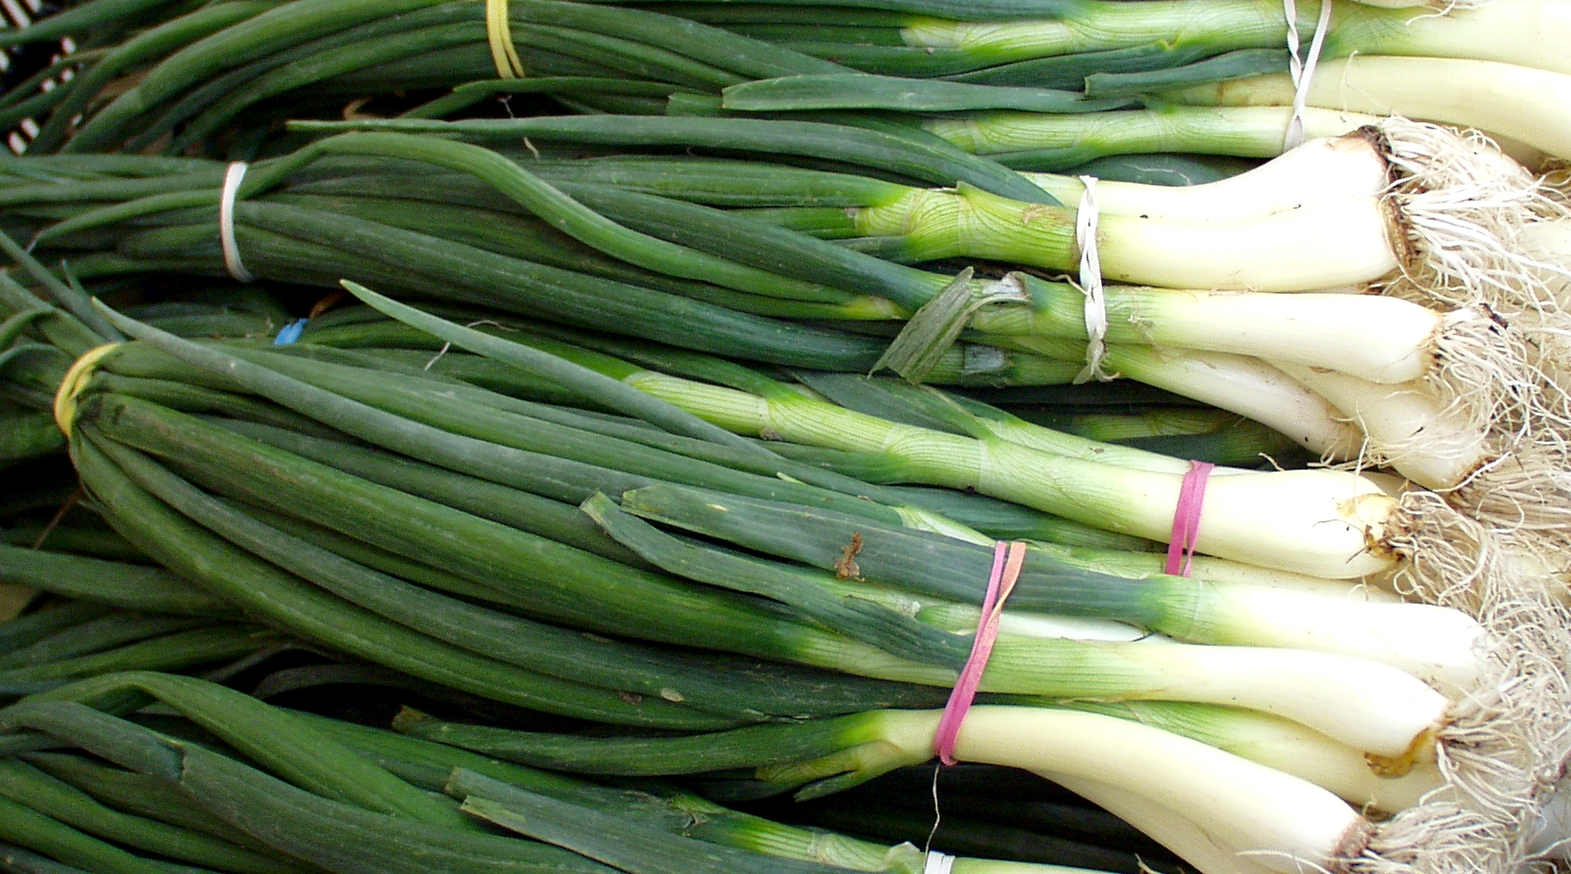 Spring onions from Magana Farms. Photo copyright 2010 by Zachary D. Lyons.